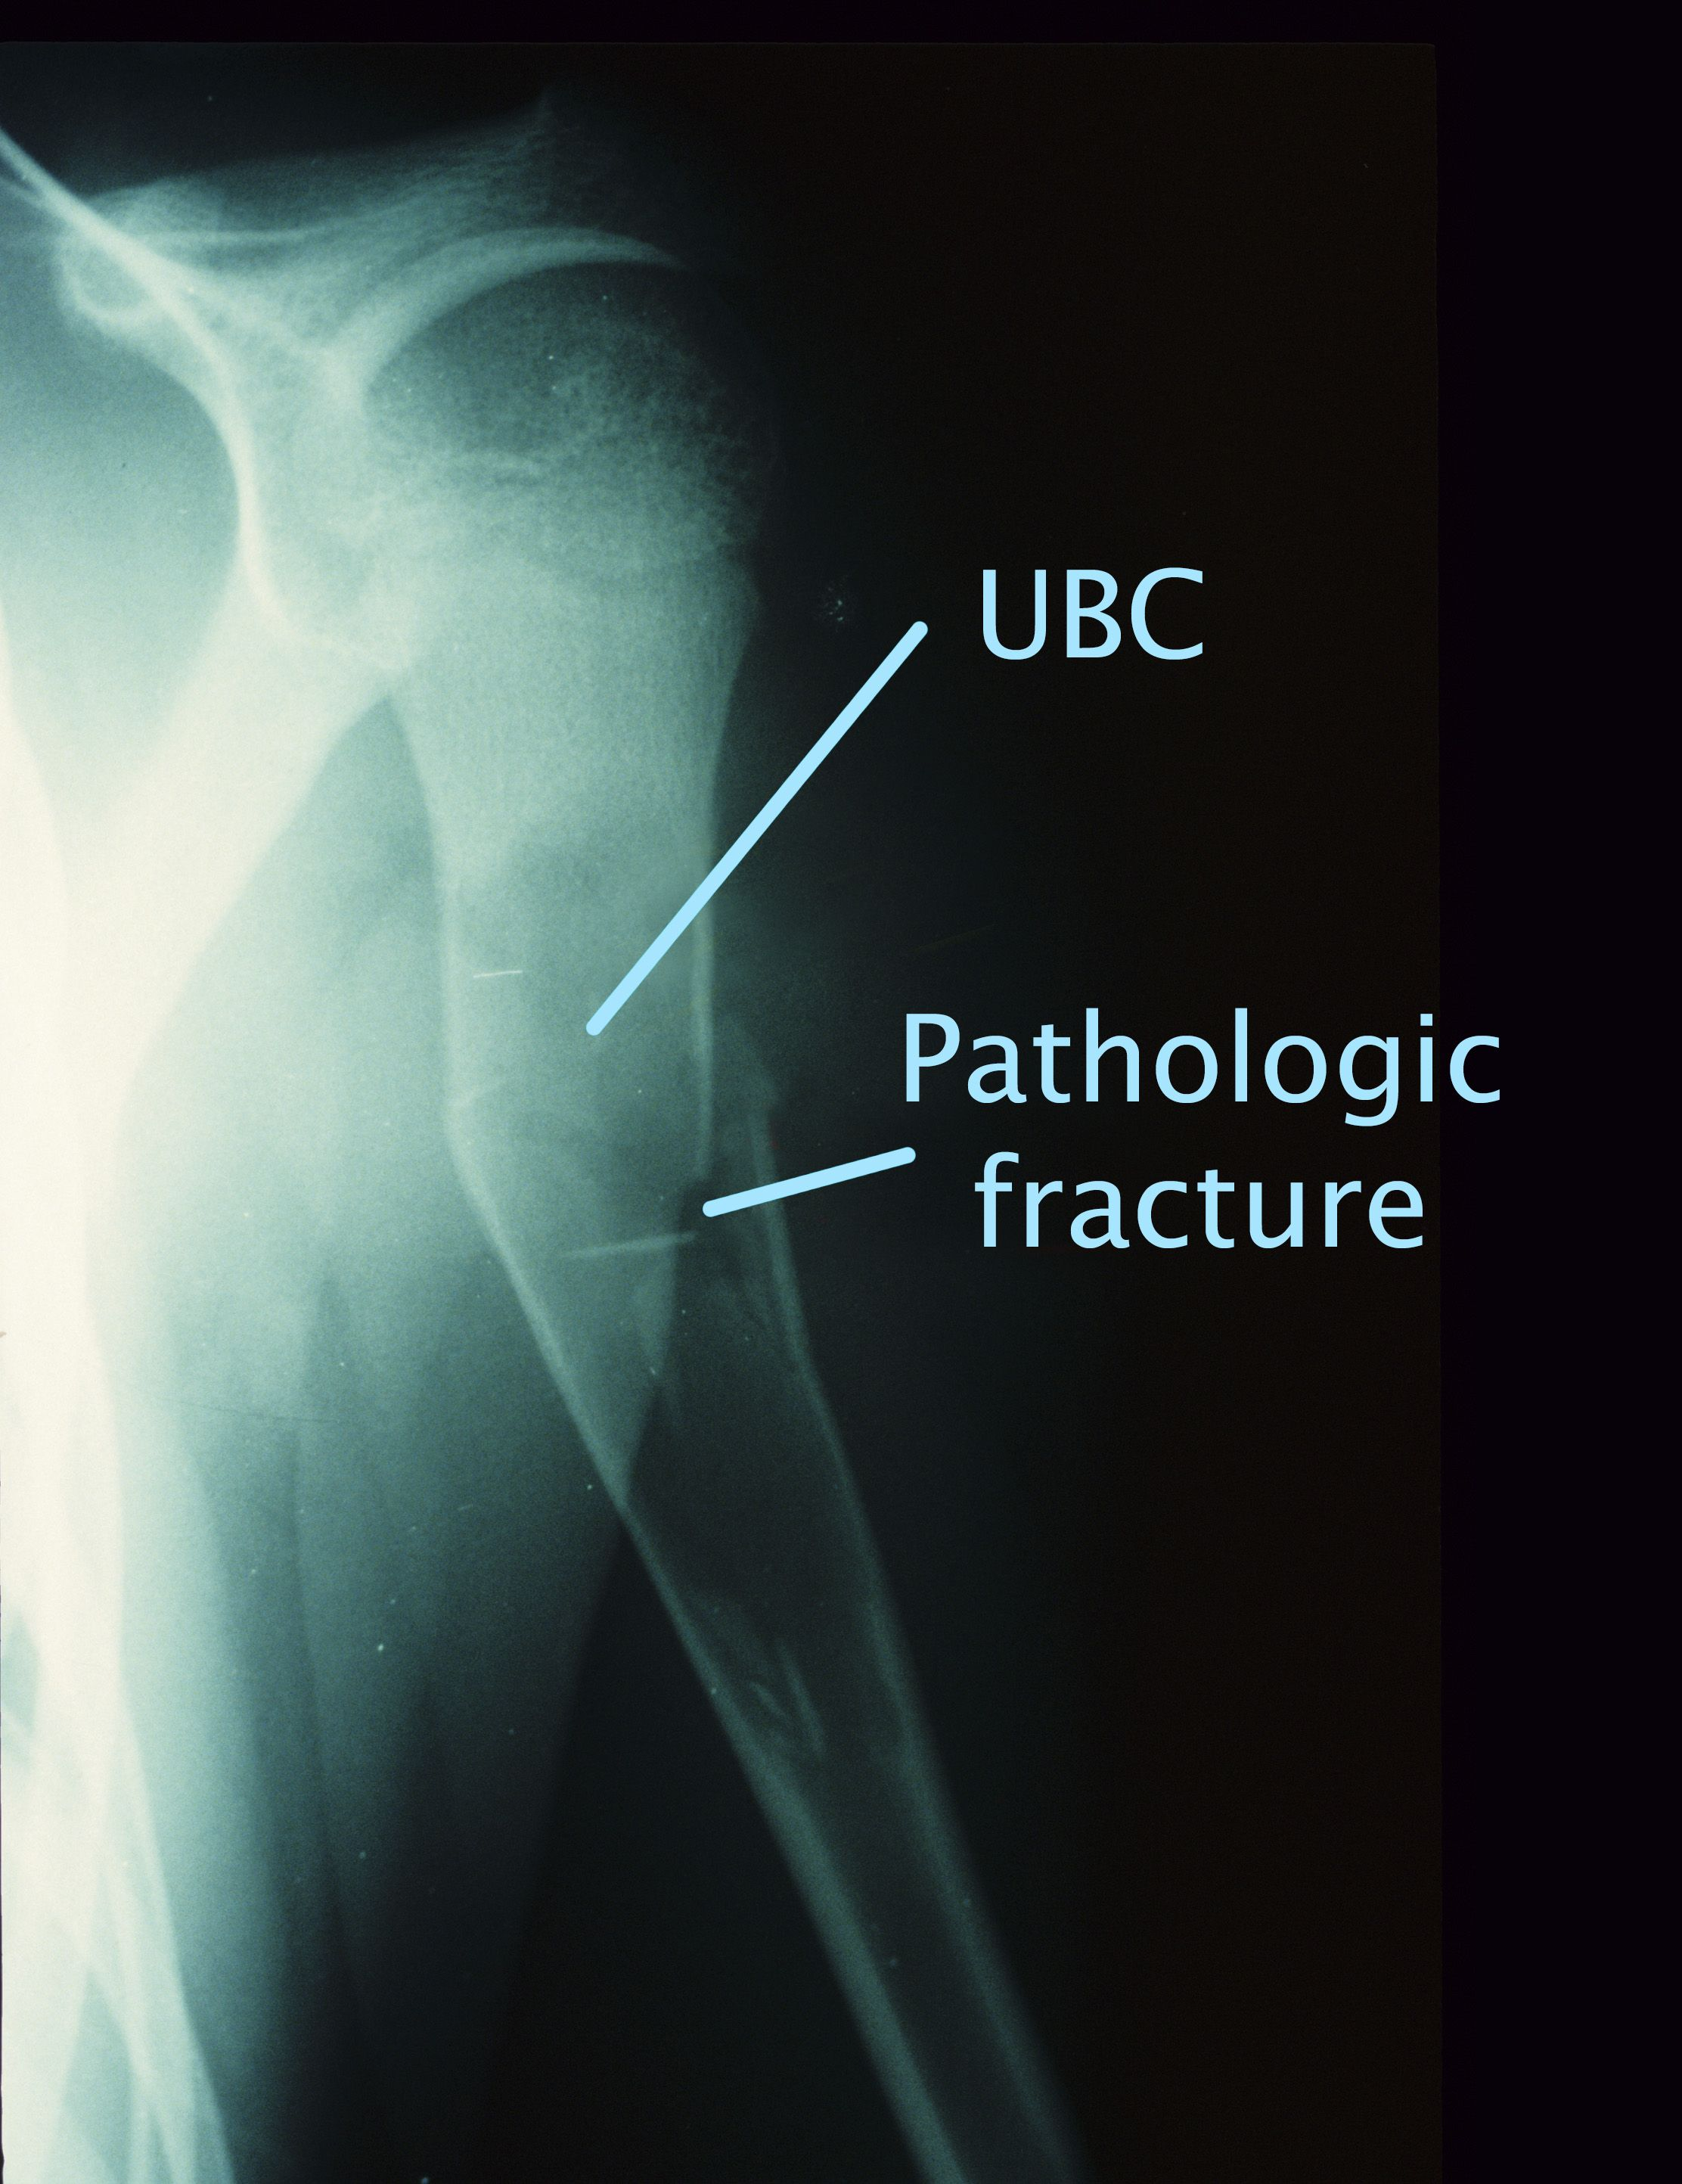 Unicameral bone cyst and pathologic fracture